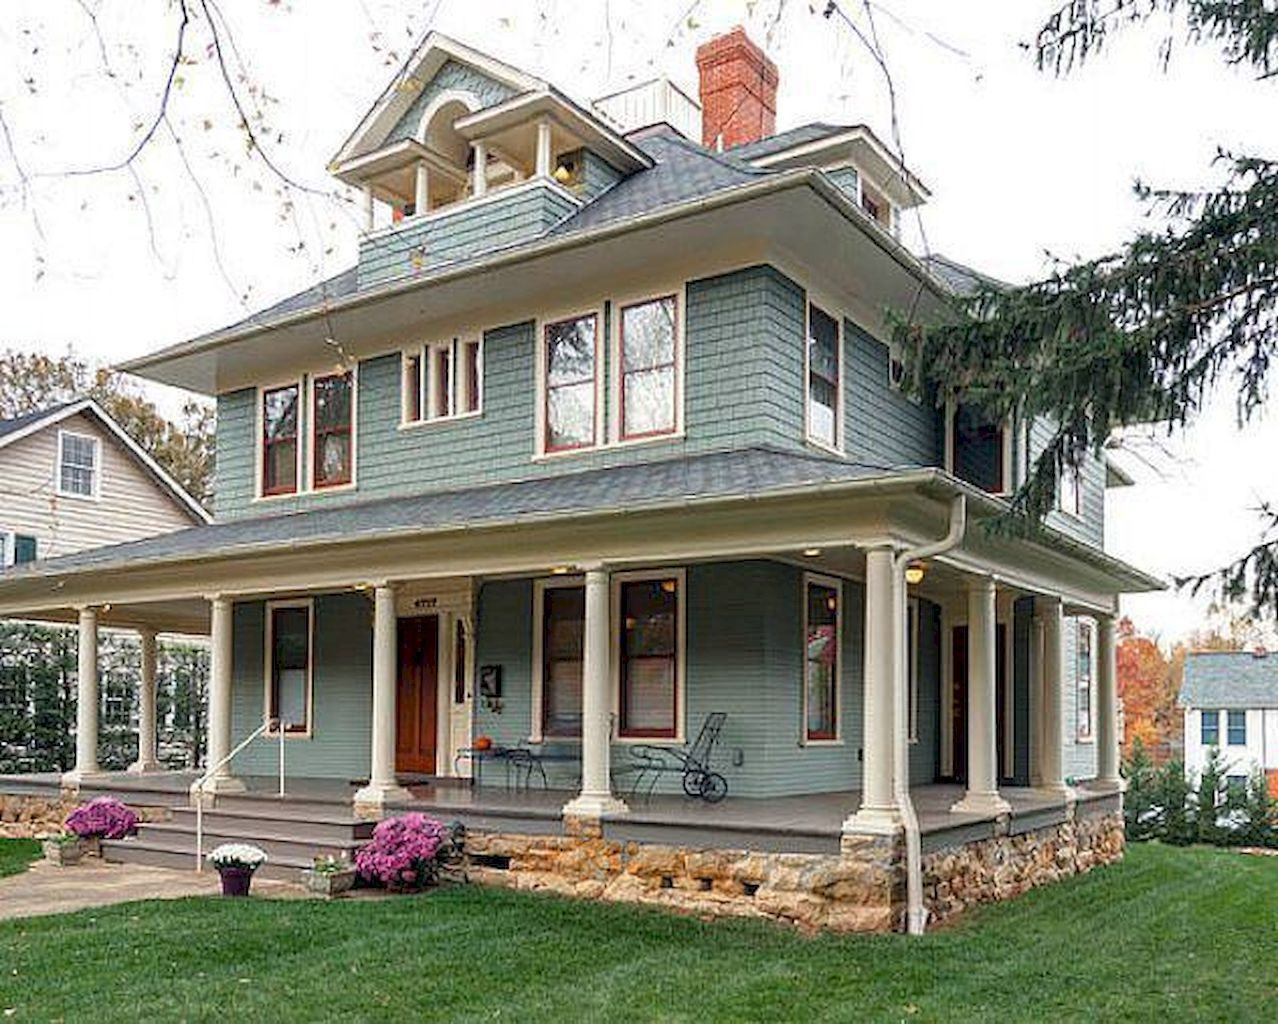 Good Cool 80 Awesome Victorian Farmhouse Plans Design Ideas  Https://roomadness.com/ Pictures Gallery